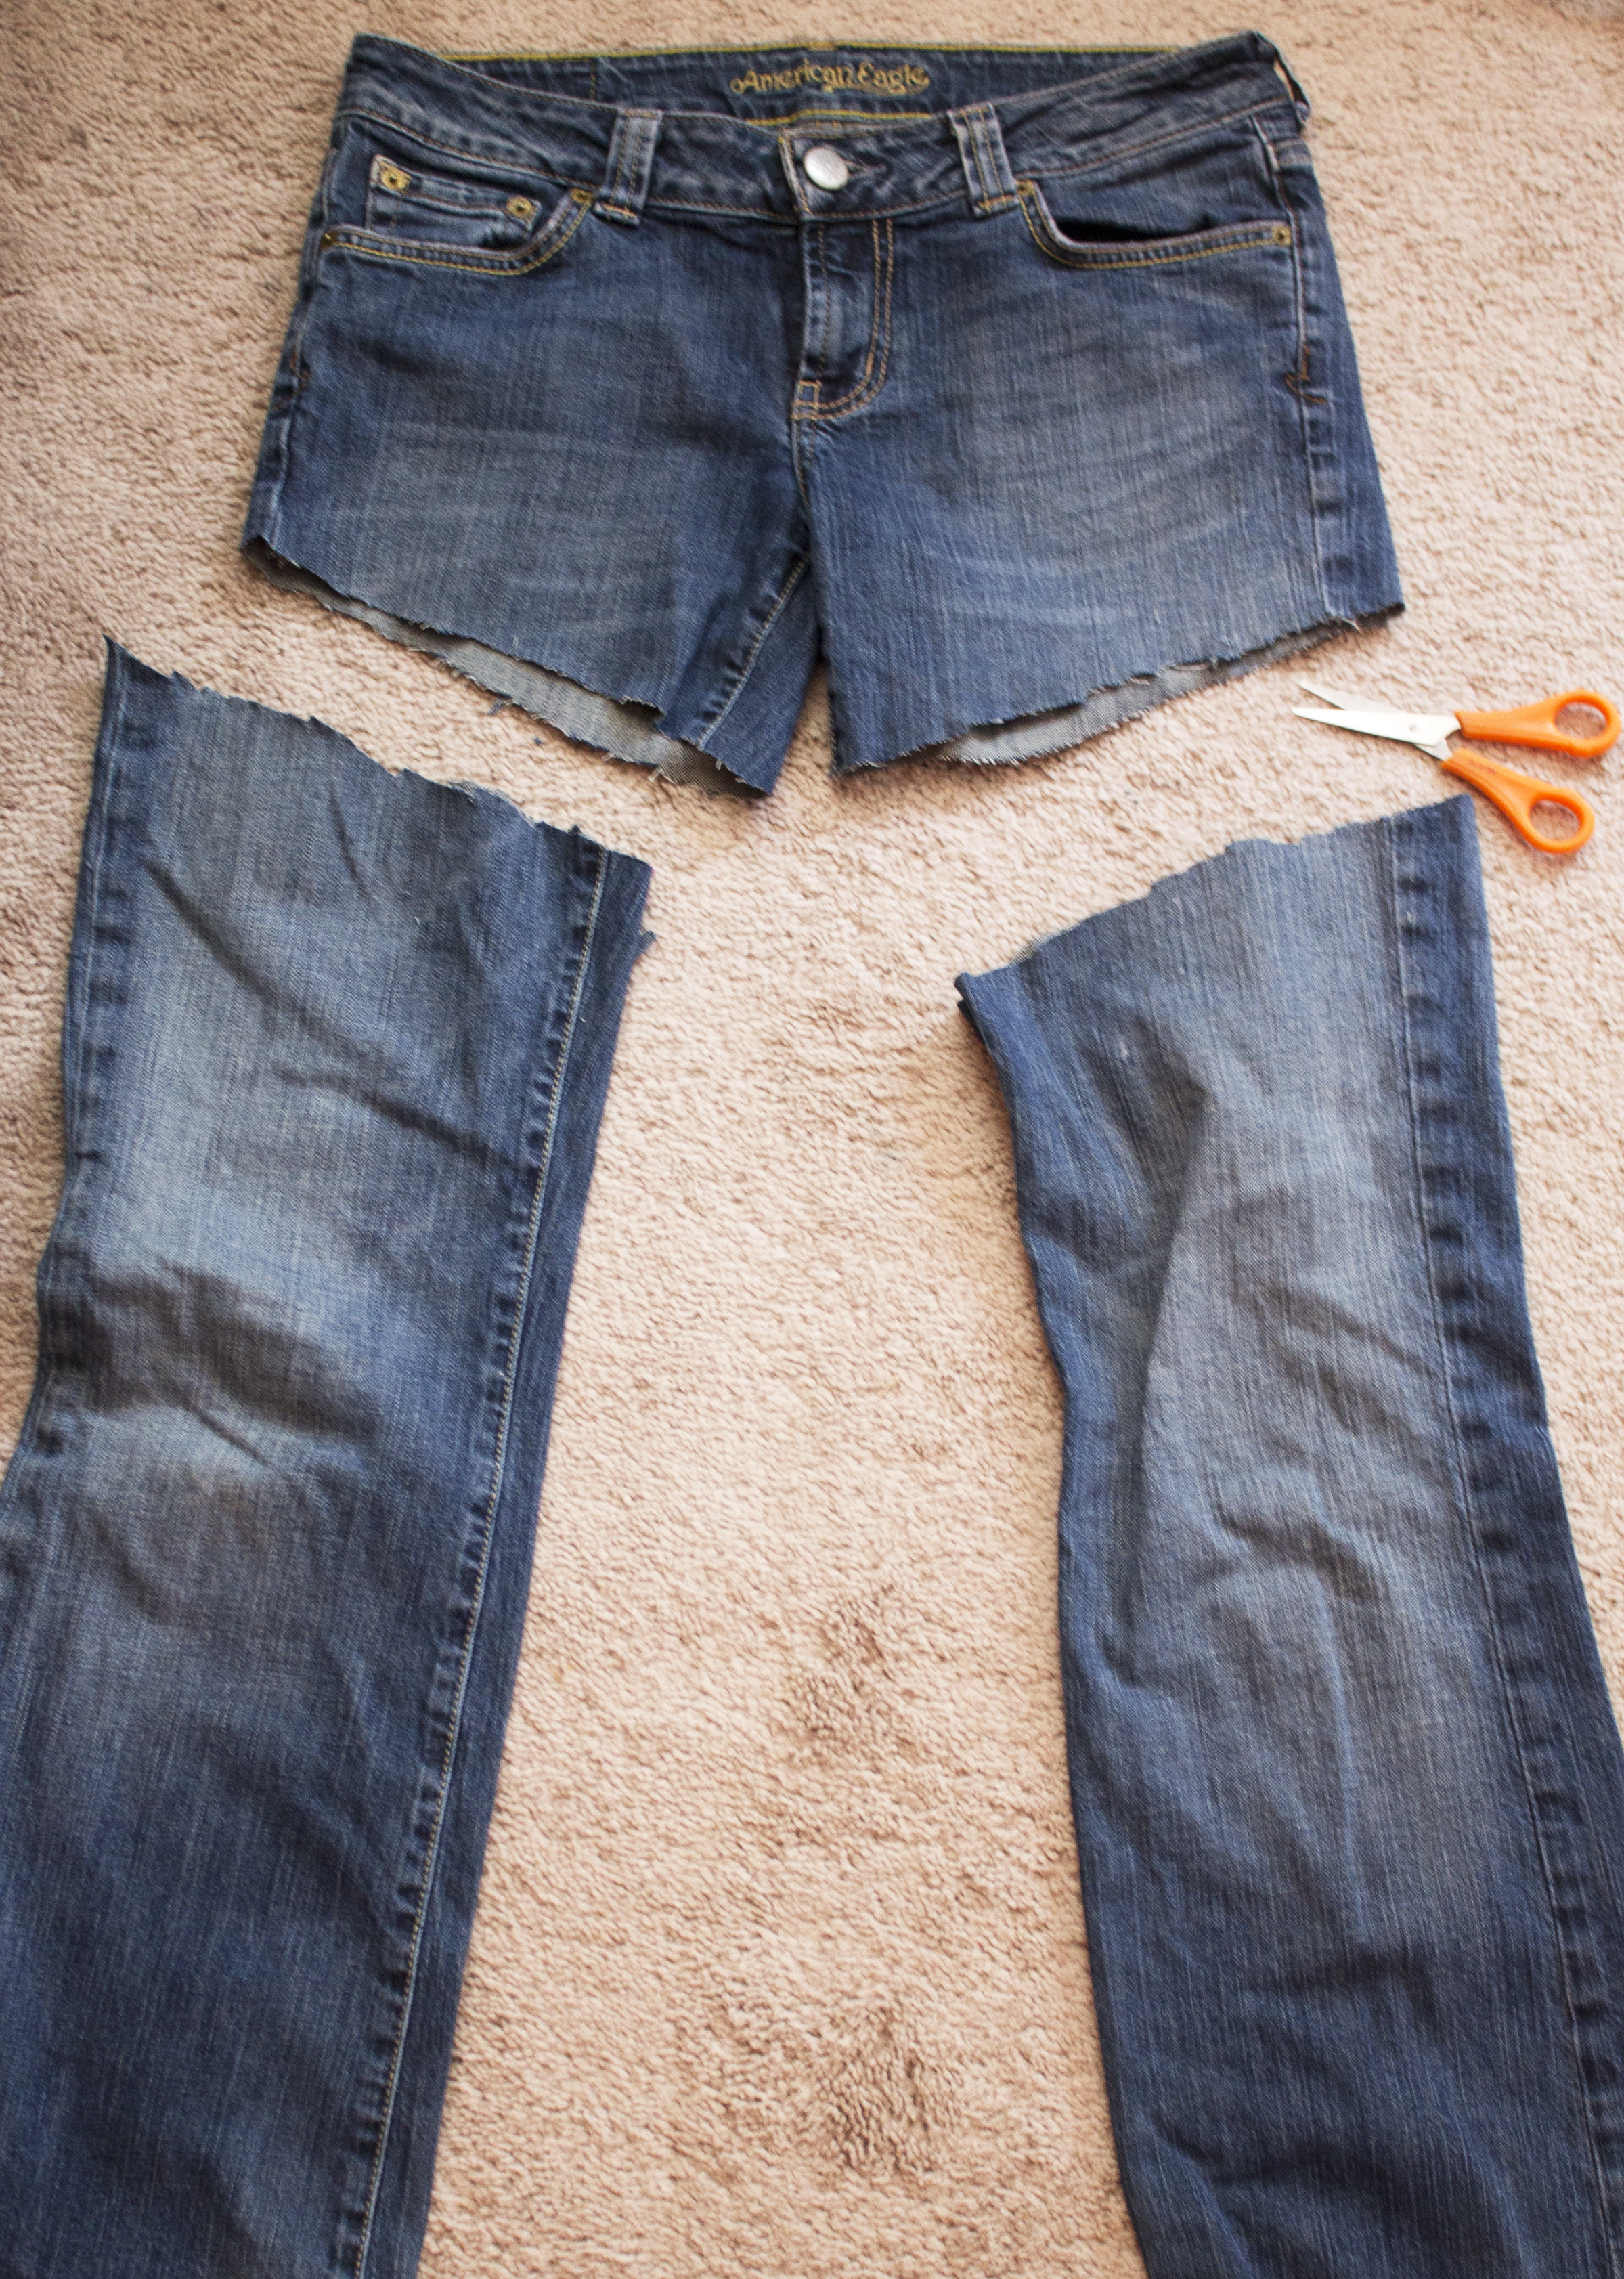 how to cut jeans into shorts with fray